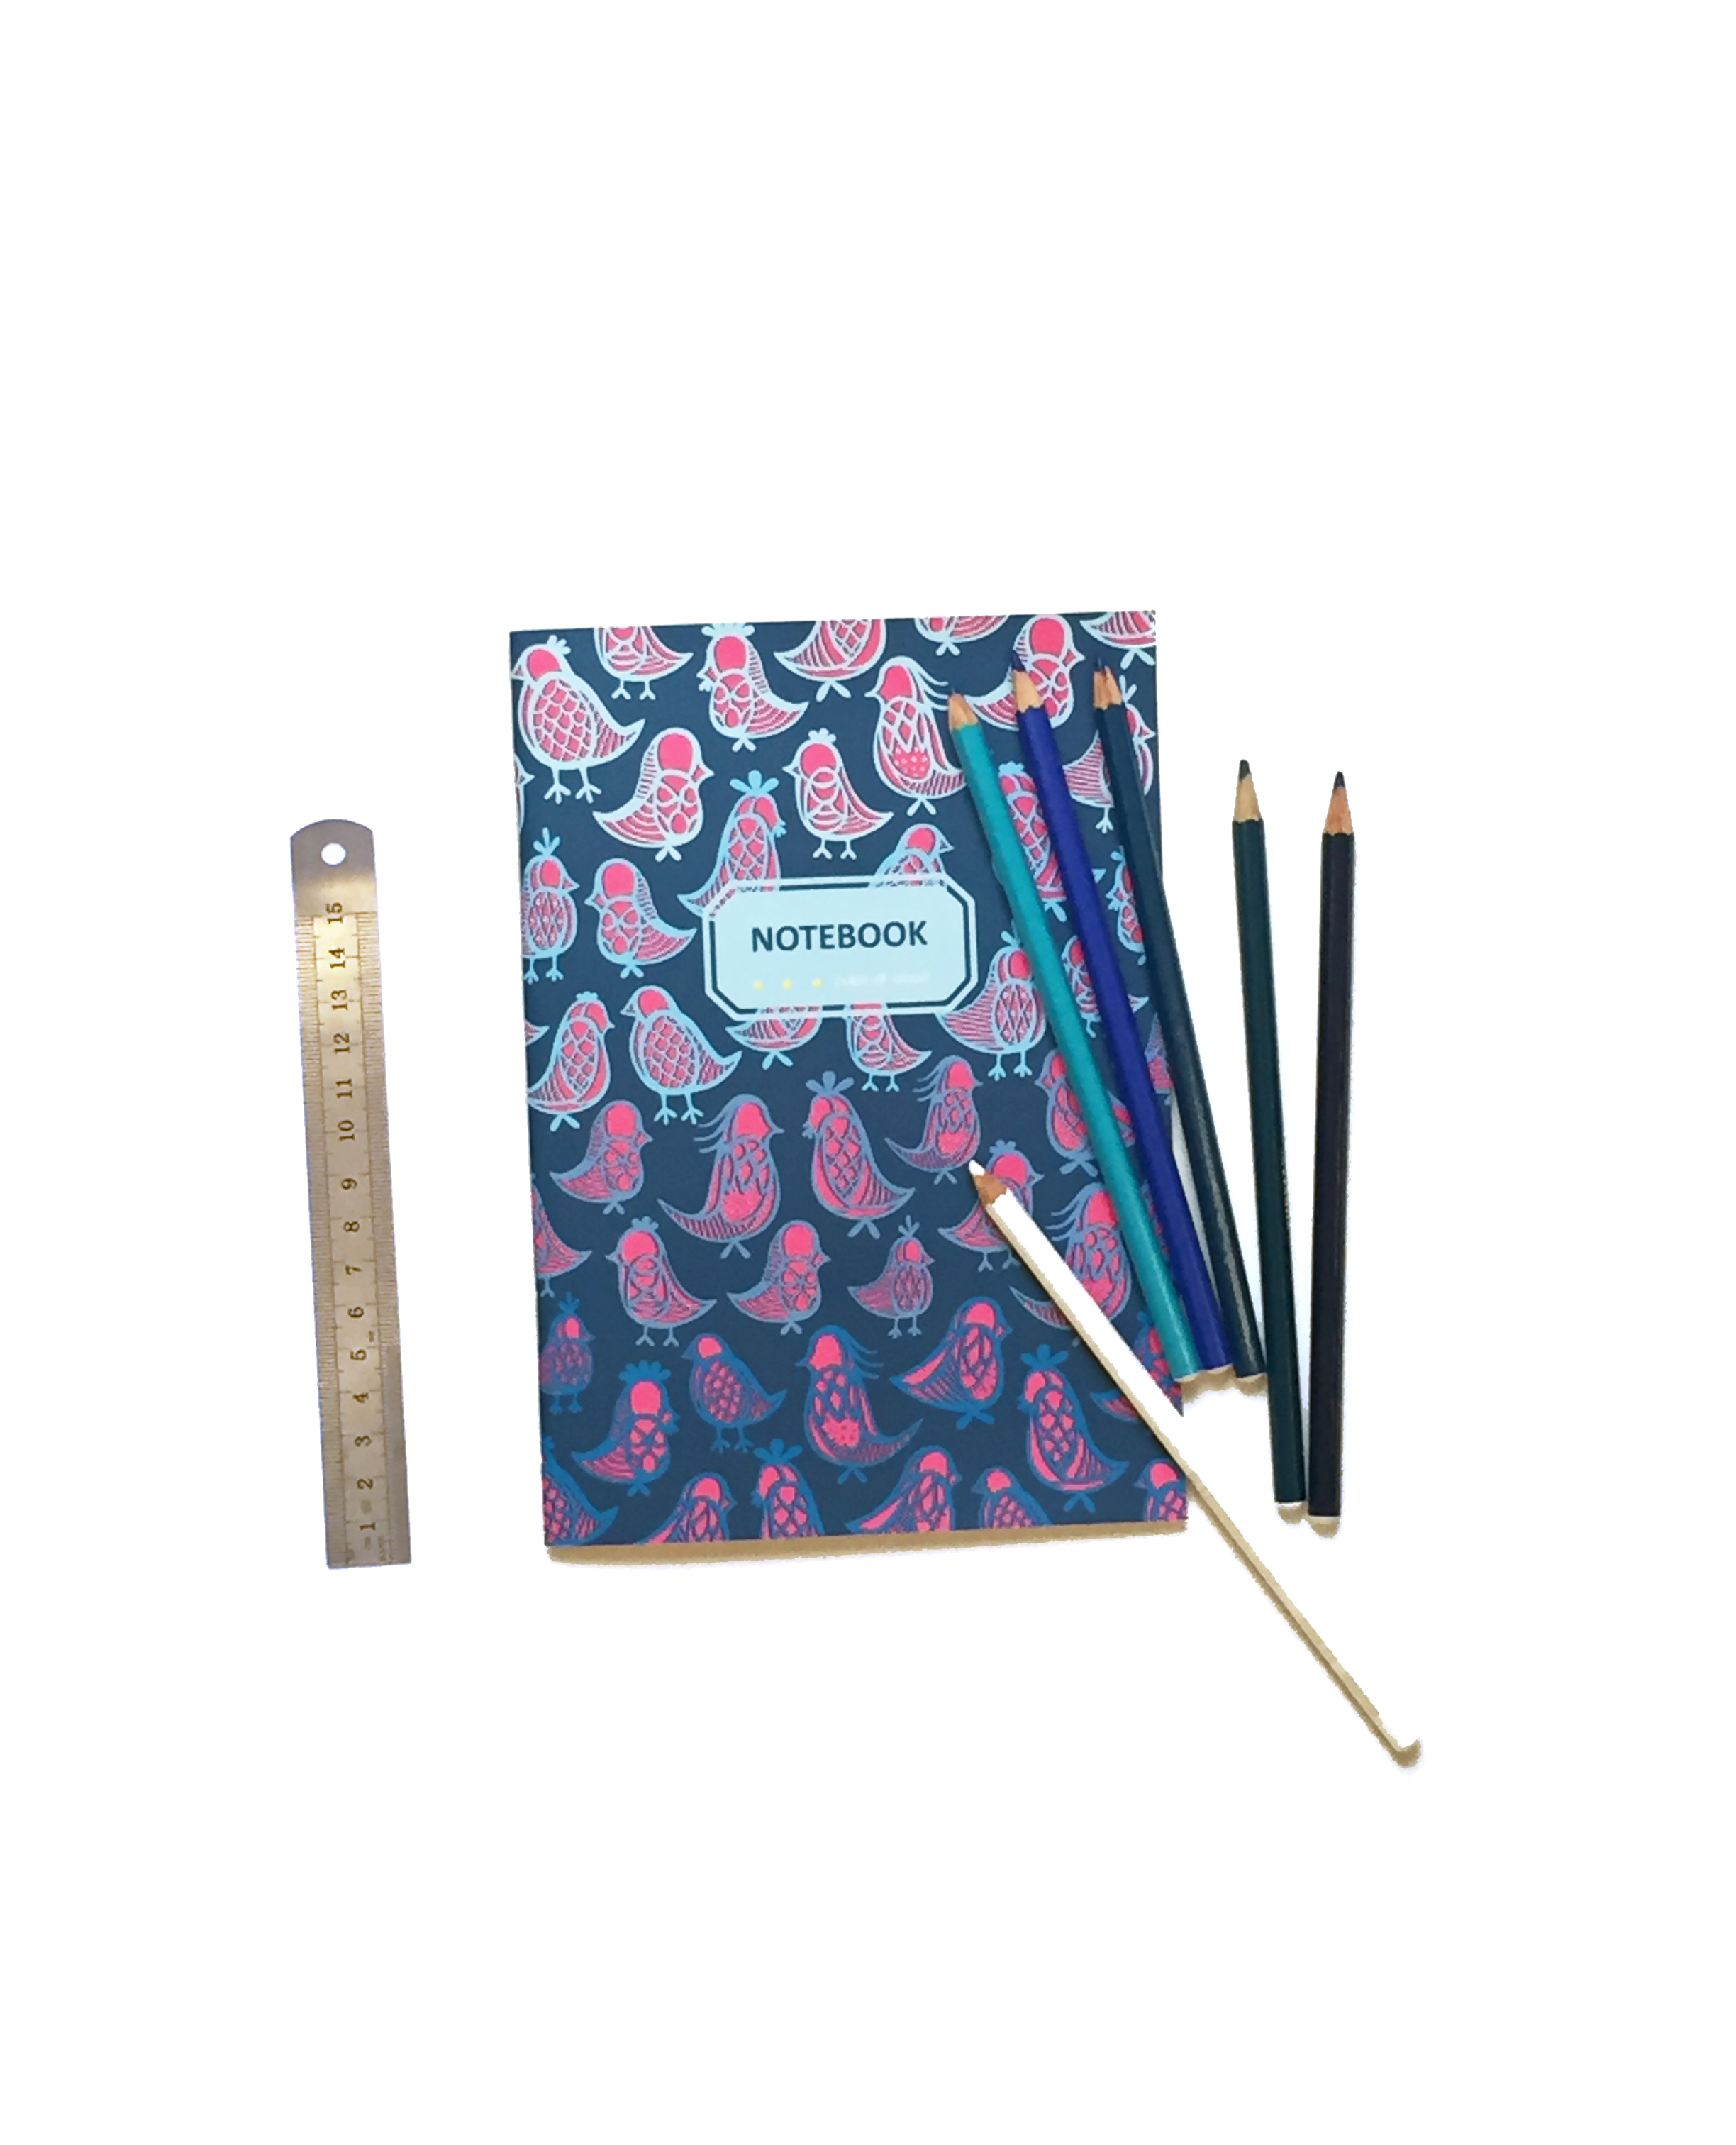 Notebook | Ornithology Blue on Blue